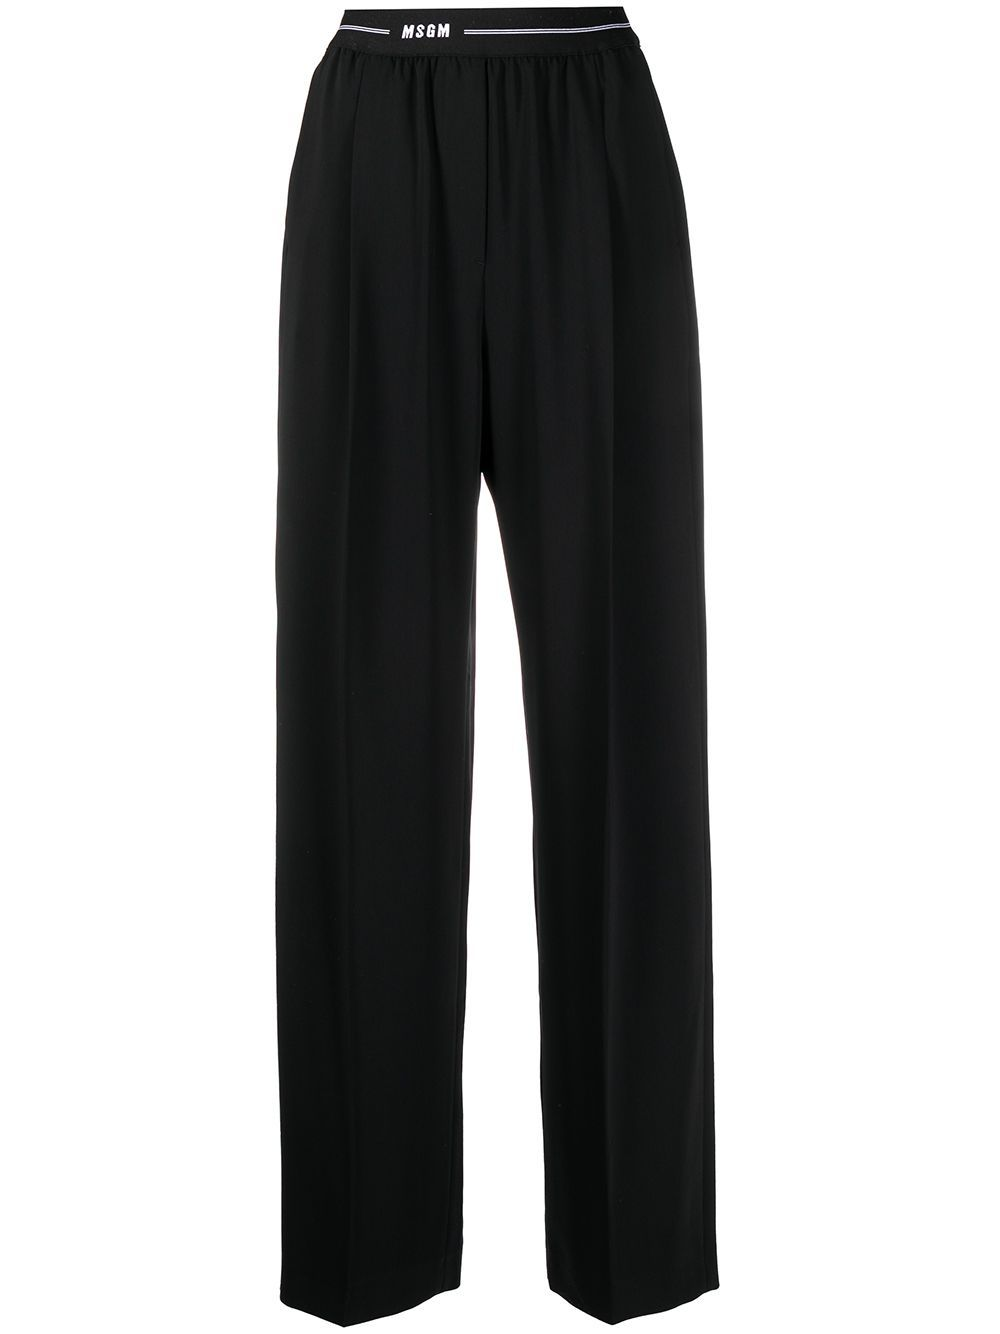 Msgm WOMEN'S 3041MDP1221711699 BLACK OTHER MATERIALS PANTS